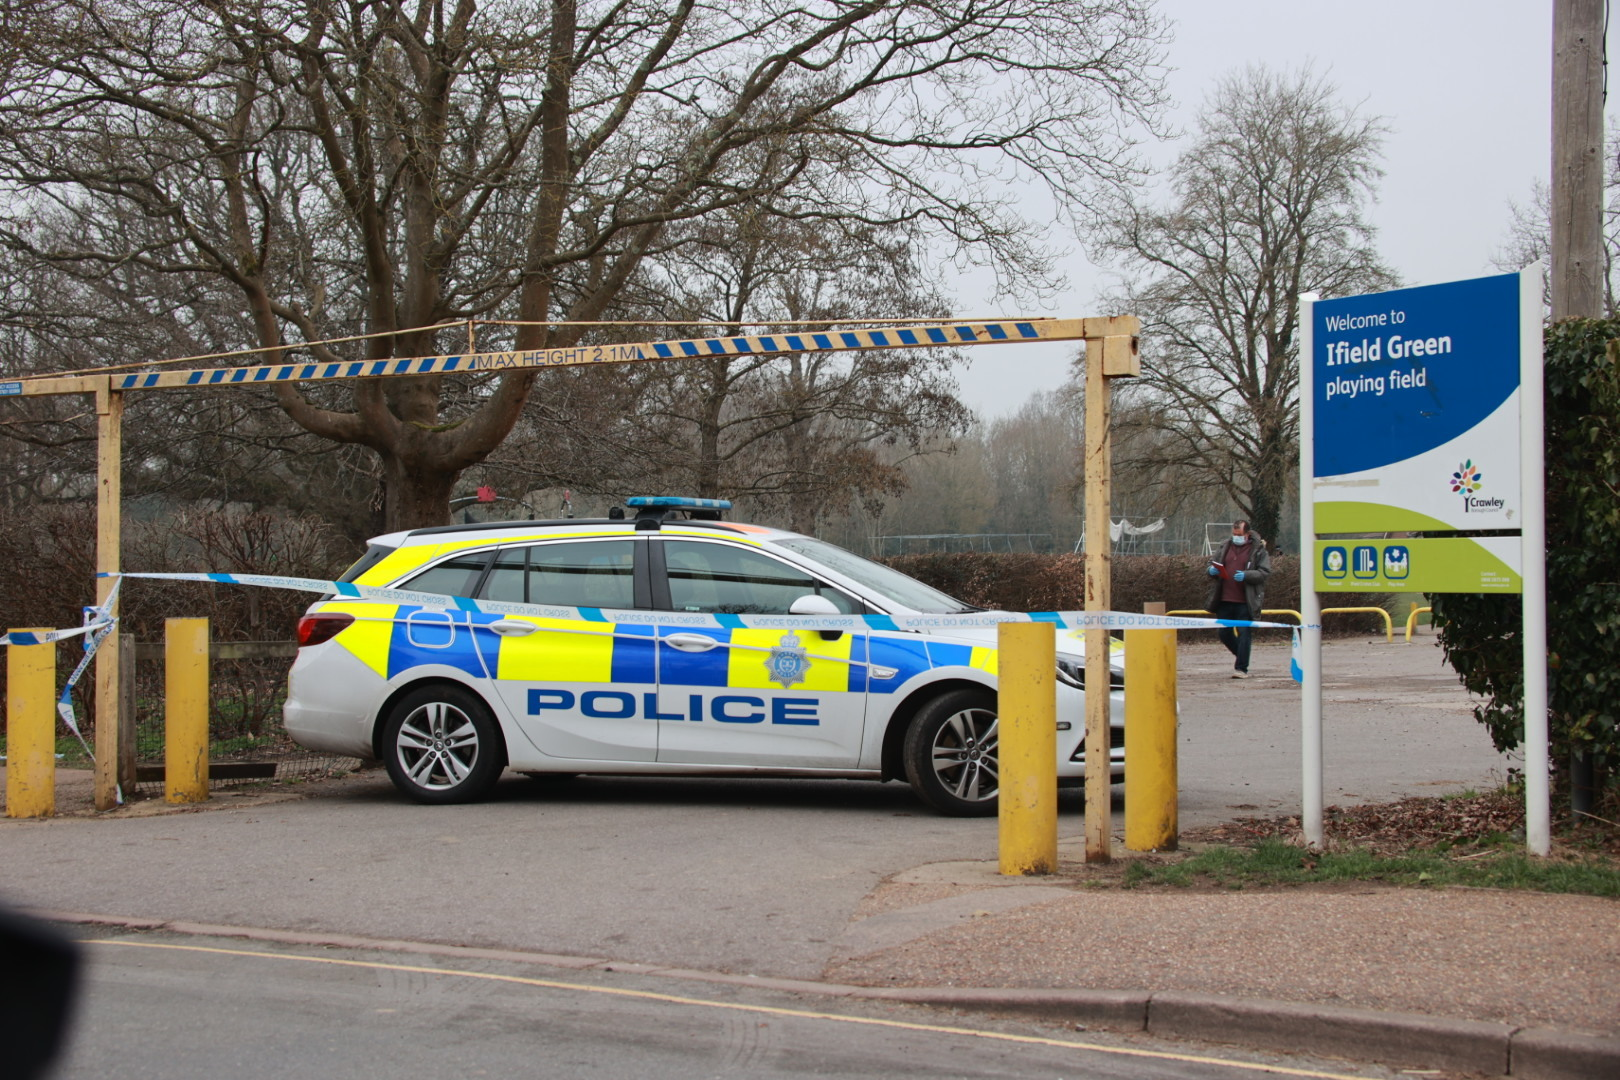 The body of a man was found on a park bench in Crawley